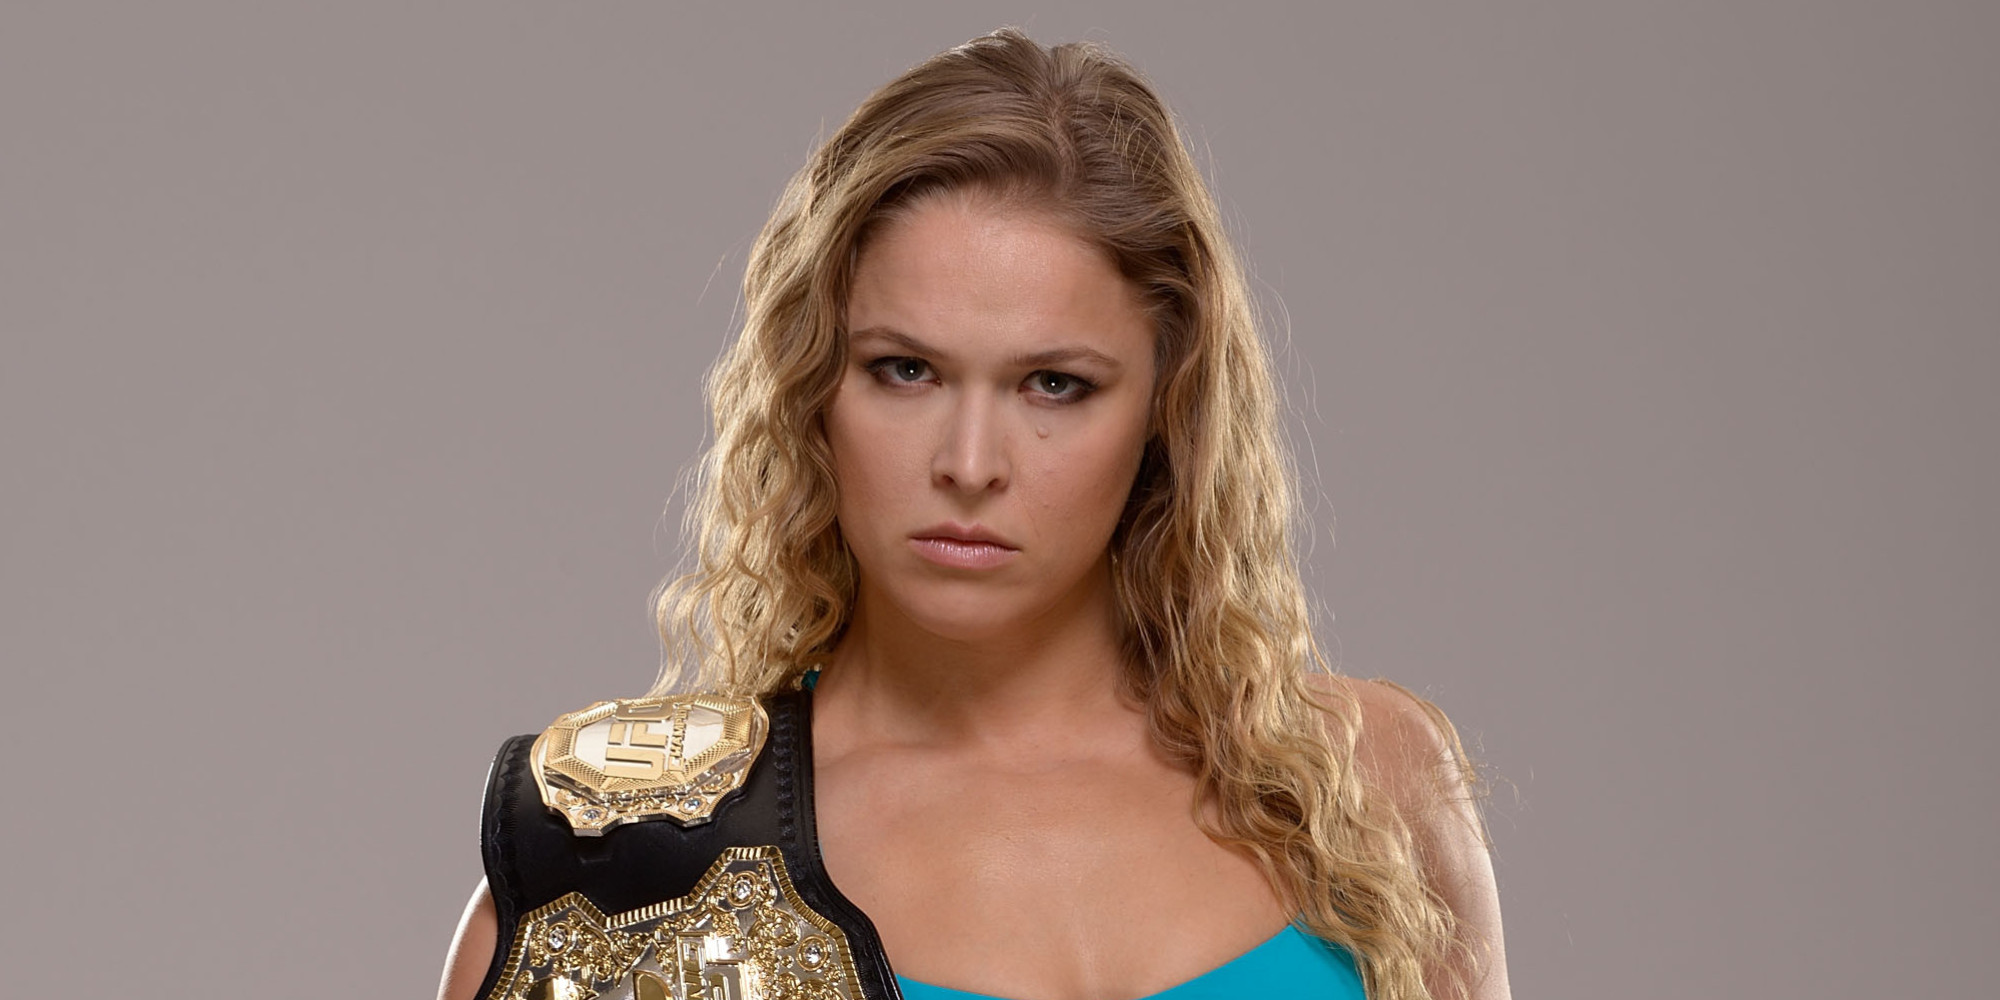 The 31-year old daughter of father Ron Rousey and mother AnnMaria De Mars, 170 cm tall Ronda Rousey in 2018 photo